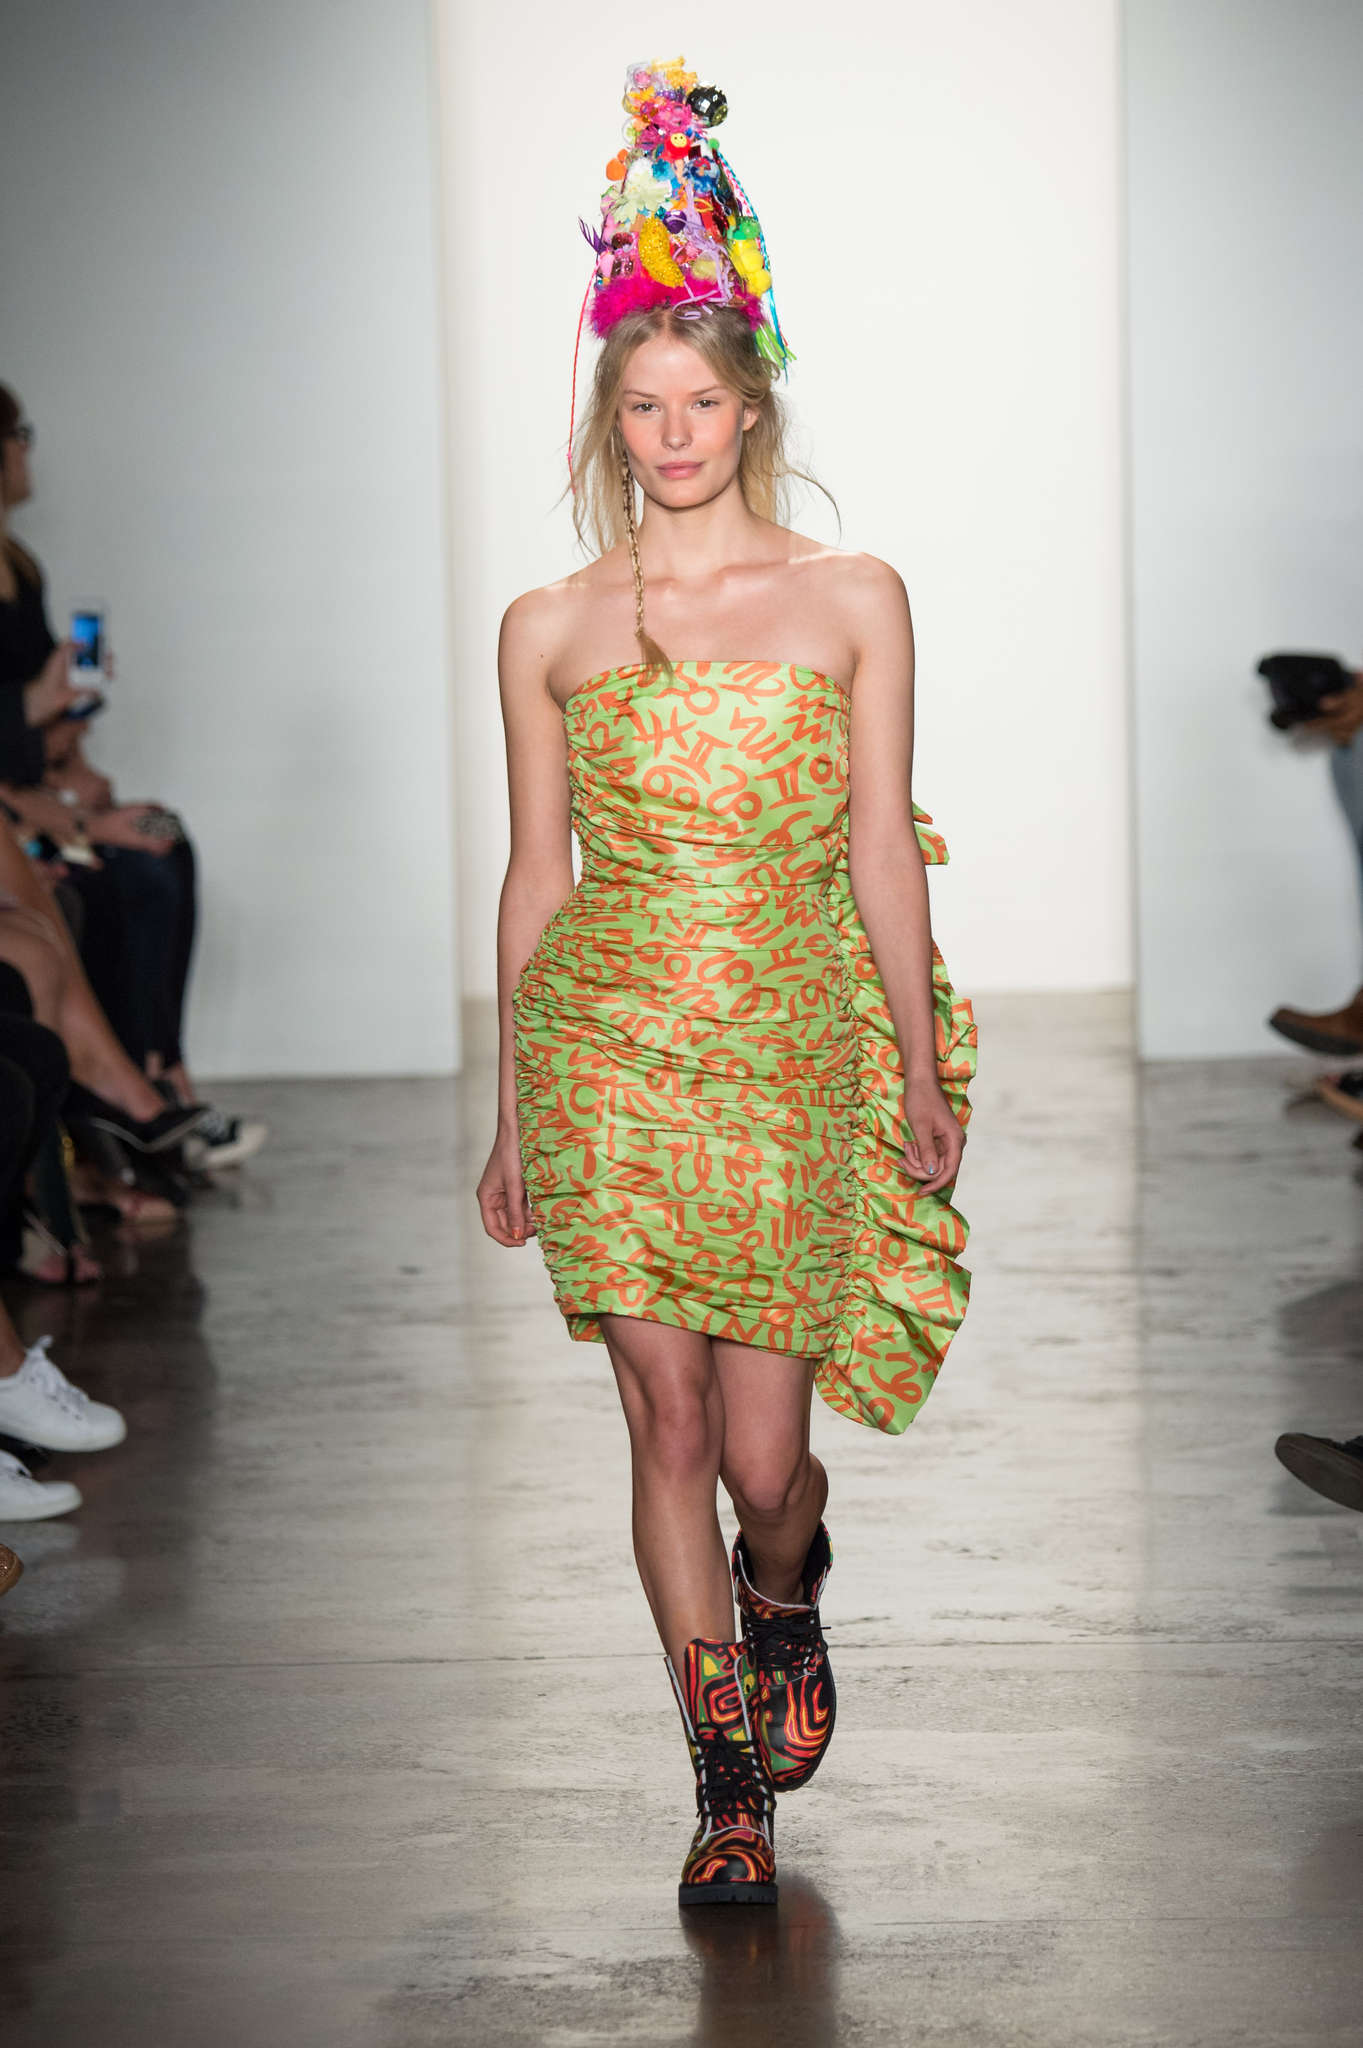 Jeremy Scott FWNY on Trends Periodical